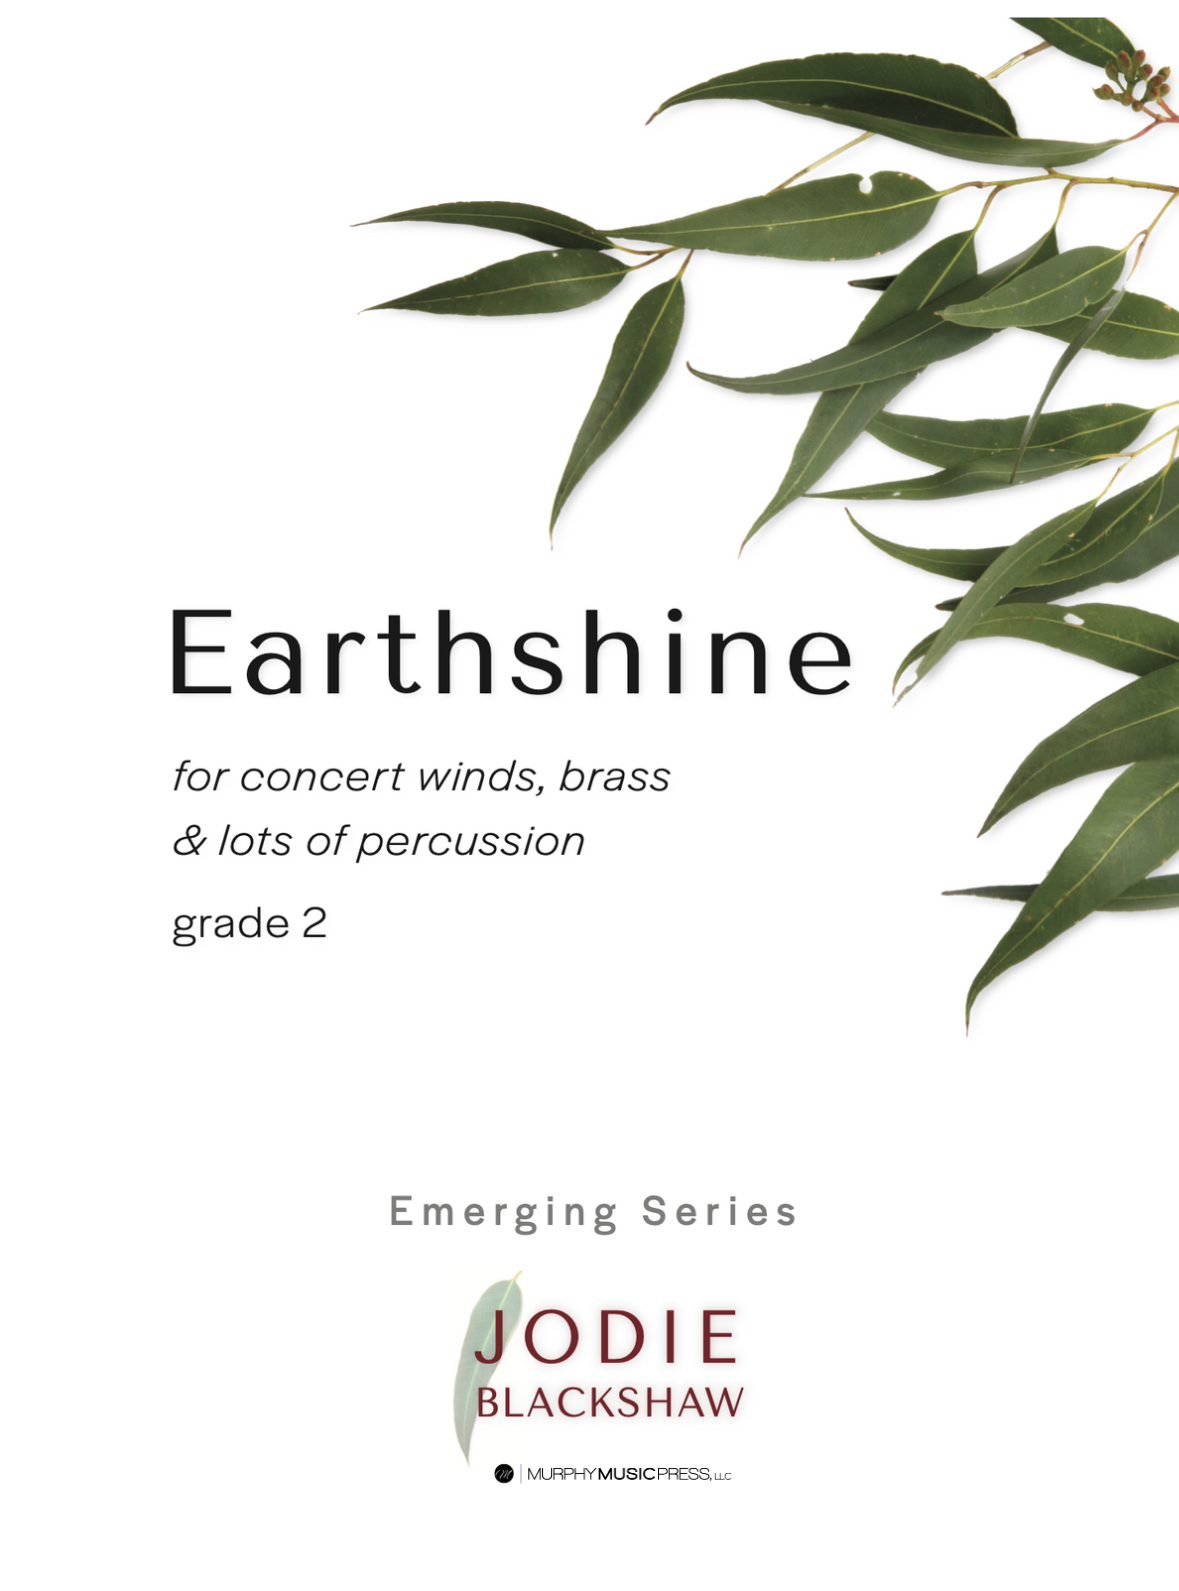 Earthshine by Jodie Blackshaw